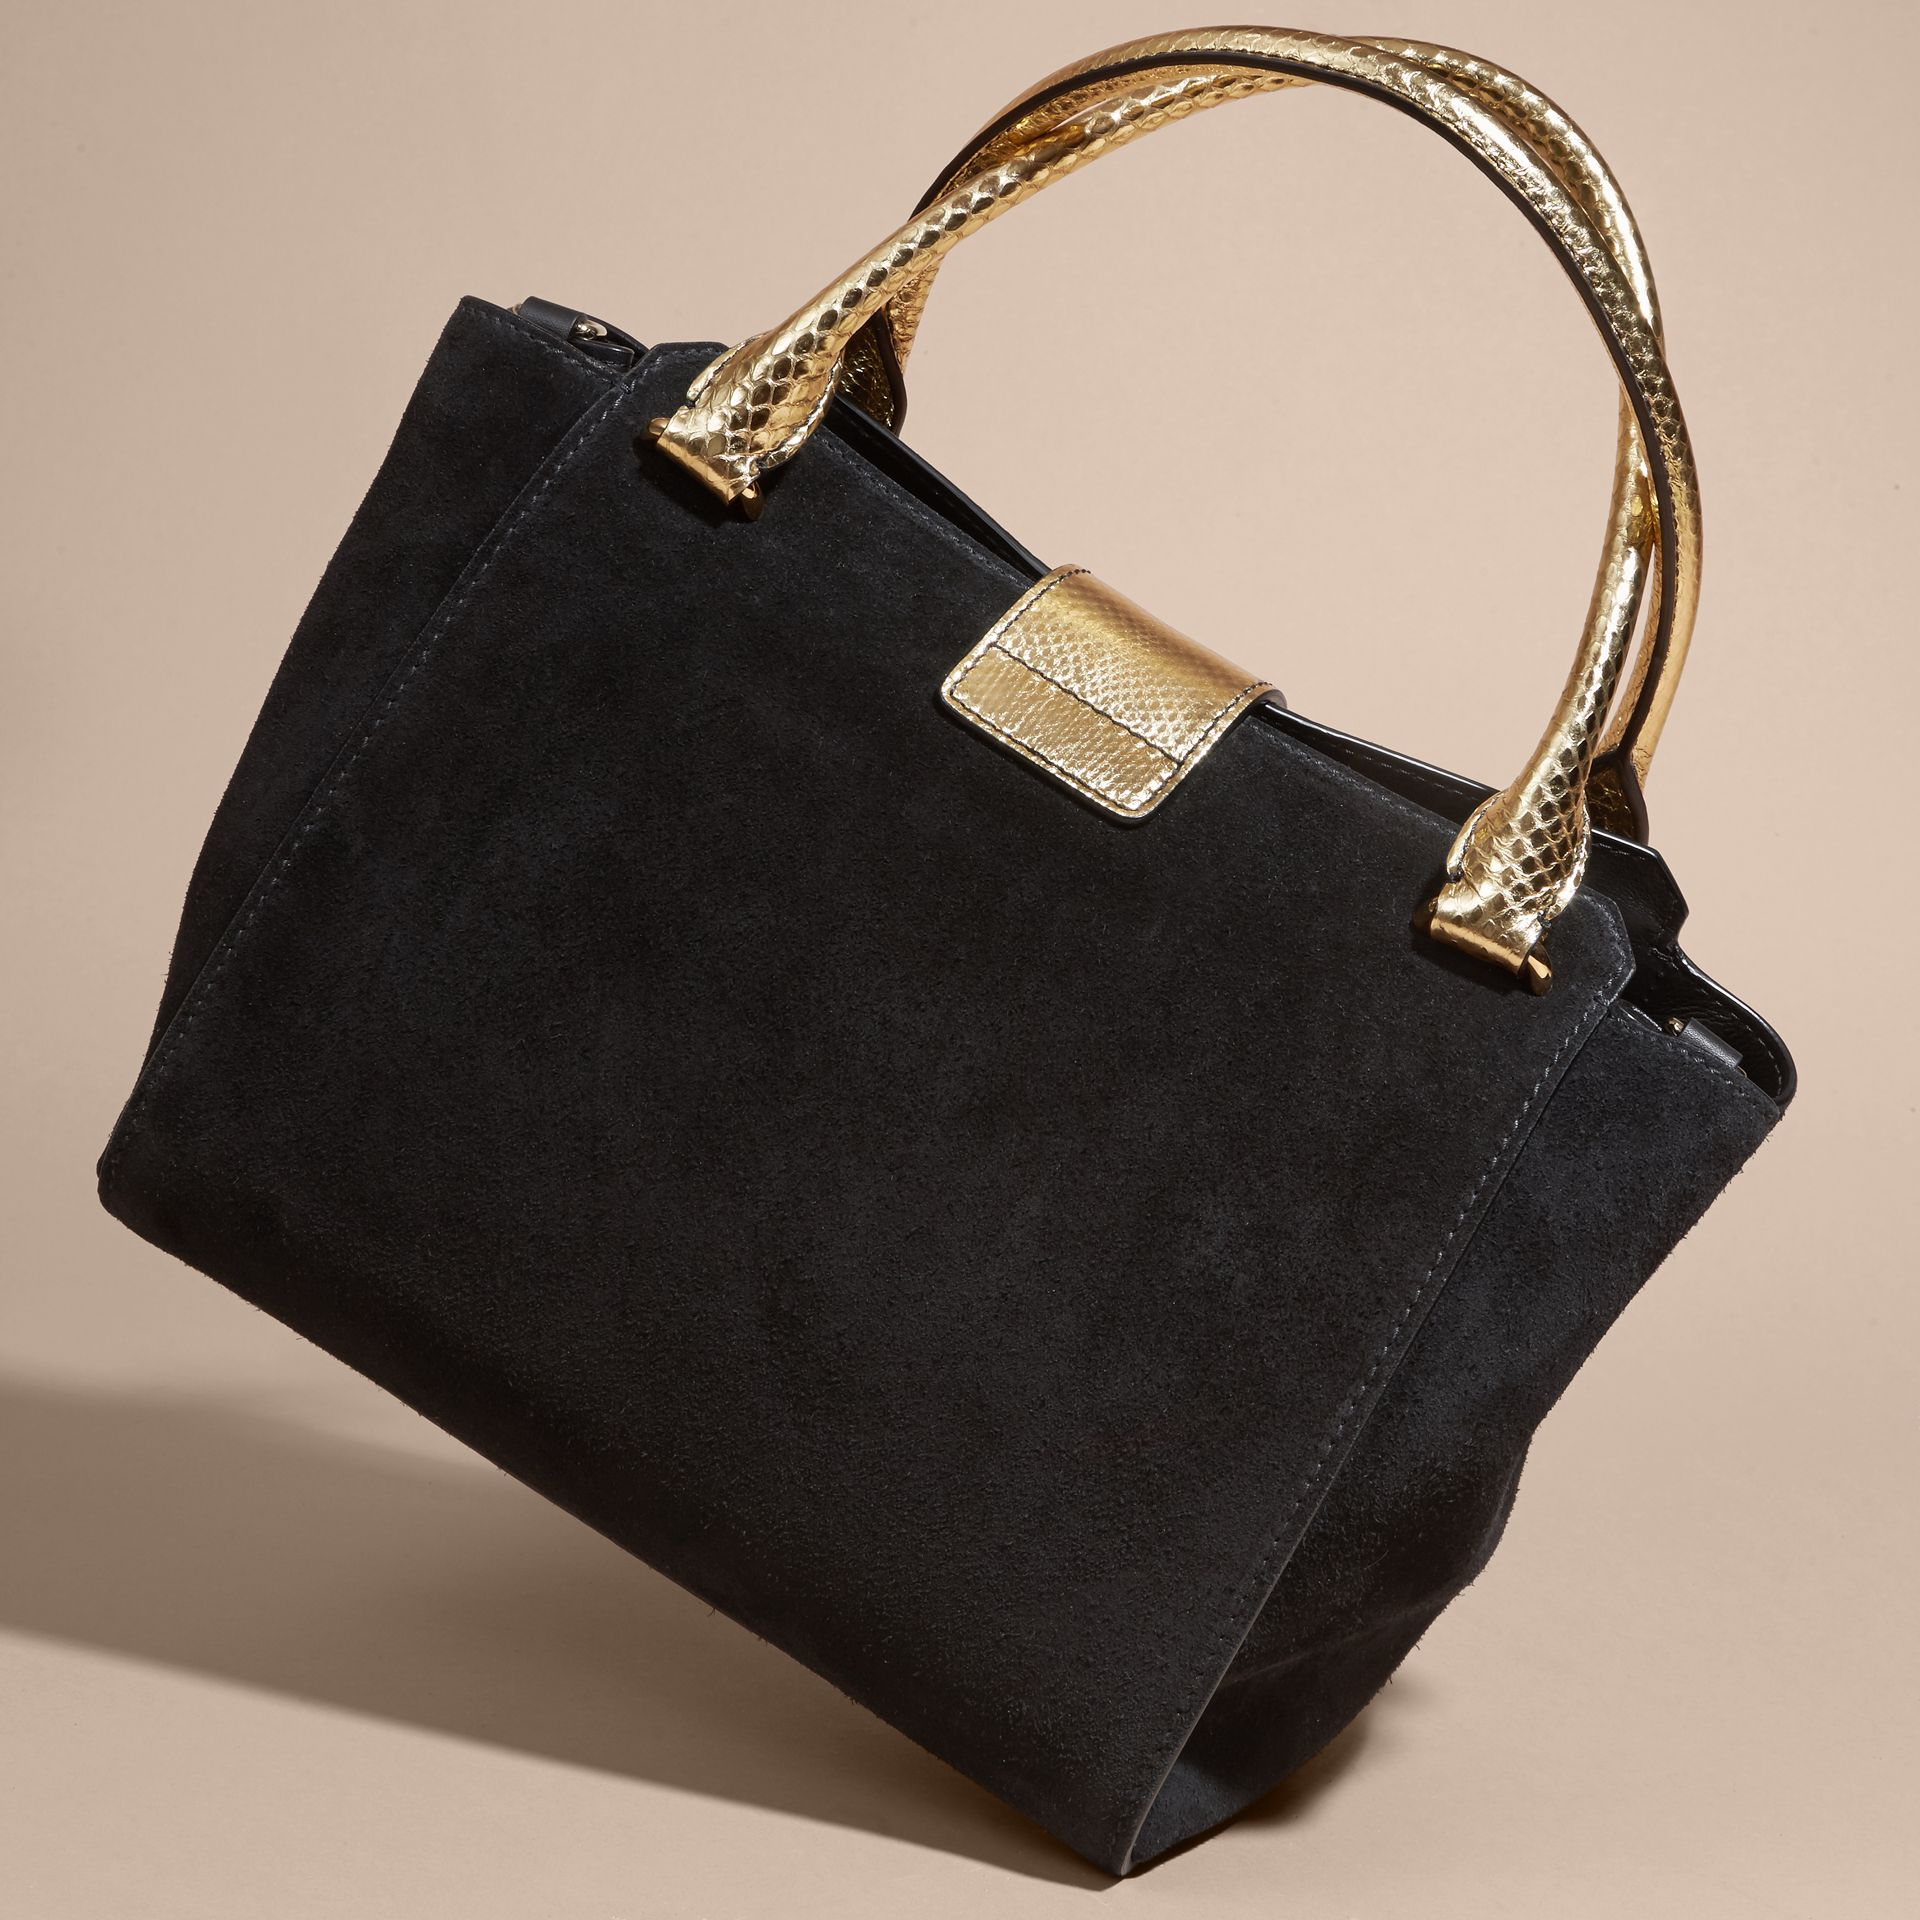 Sac tote The Buckle moyen en cuir velours et peau de serpent (Noir/or) - Femme | Burberry - photo de la galerie 4